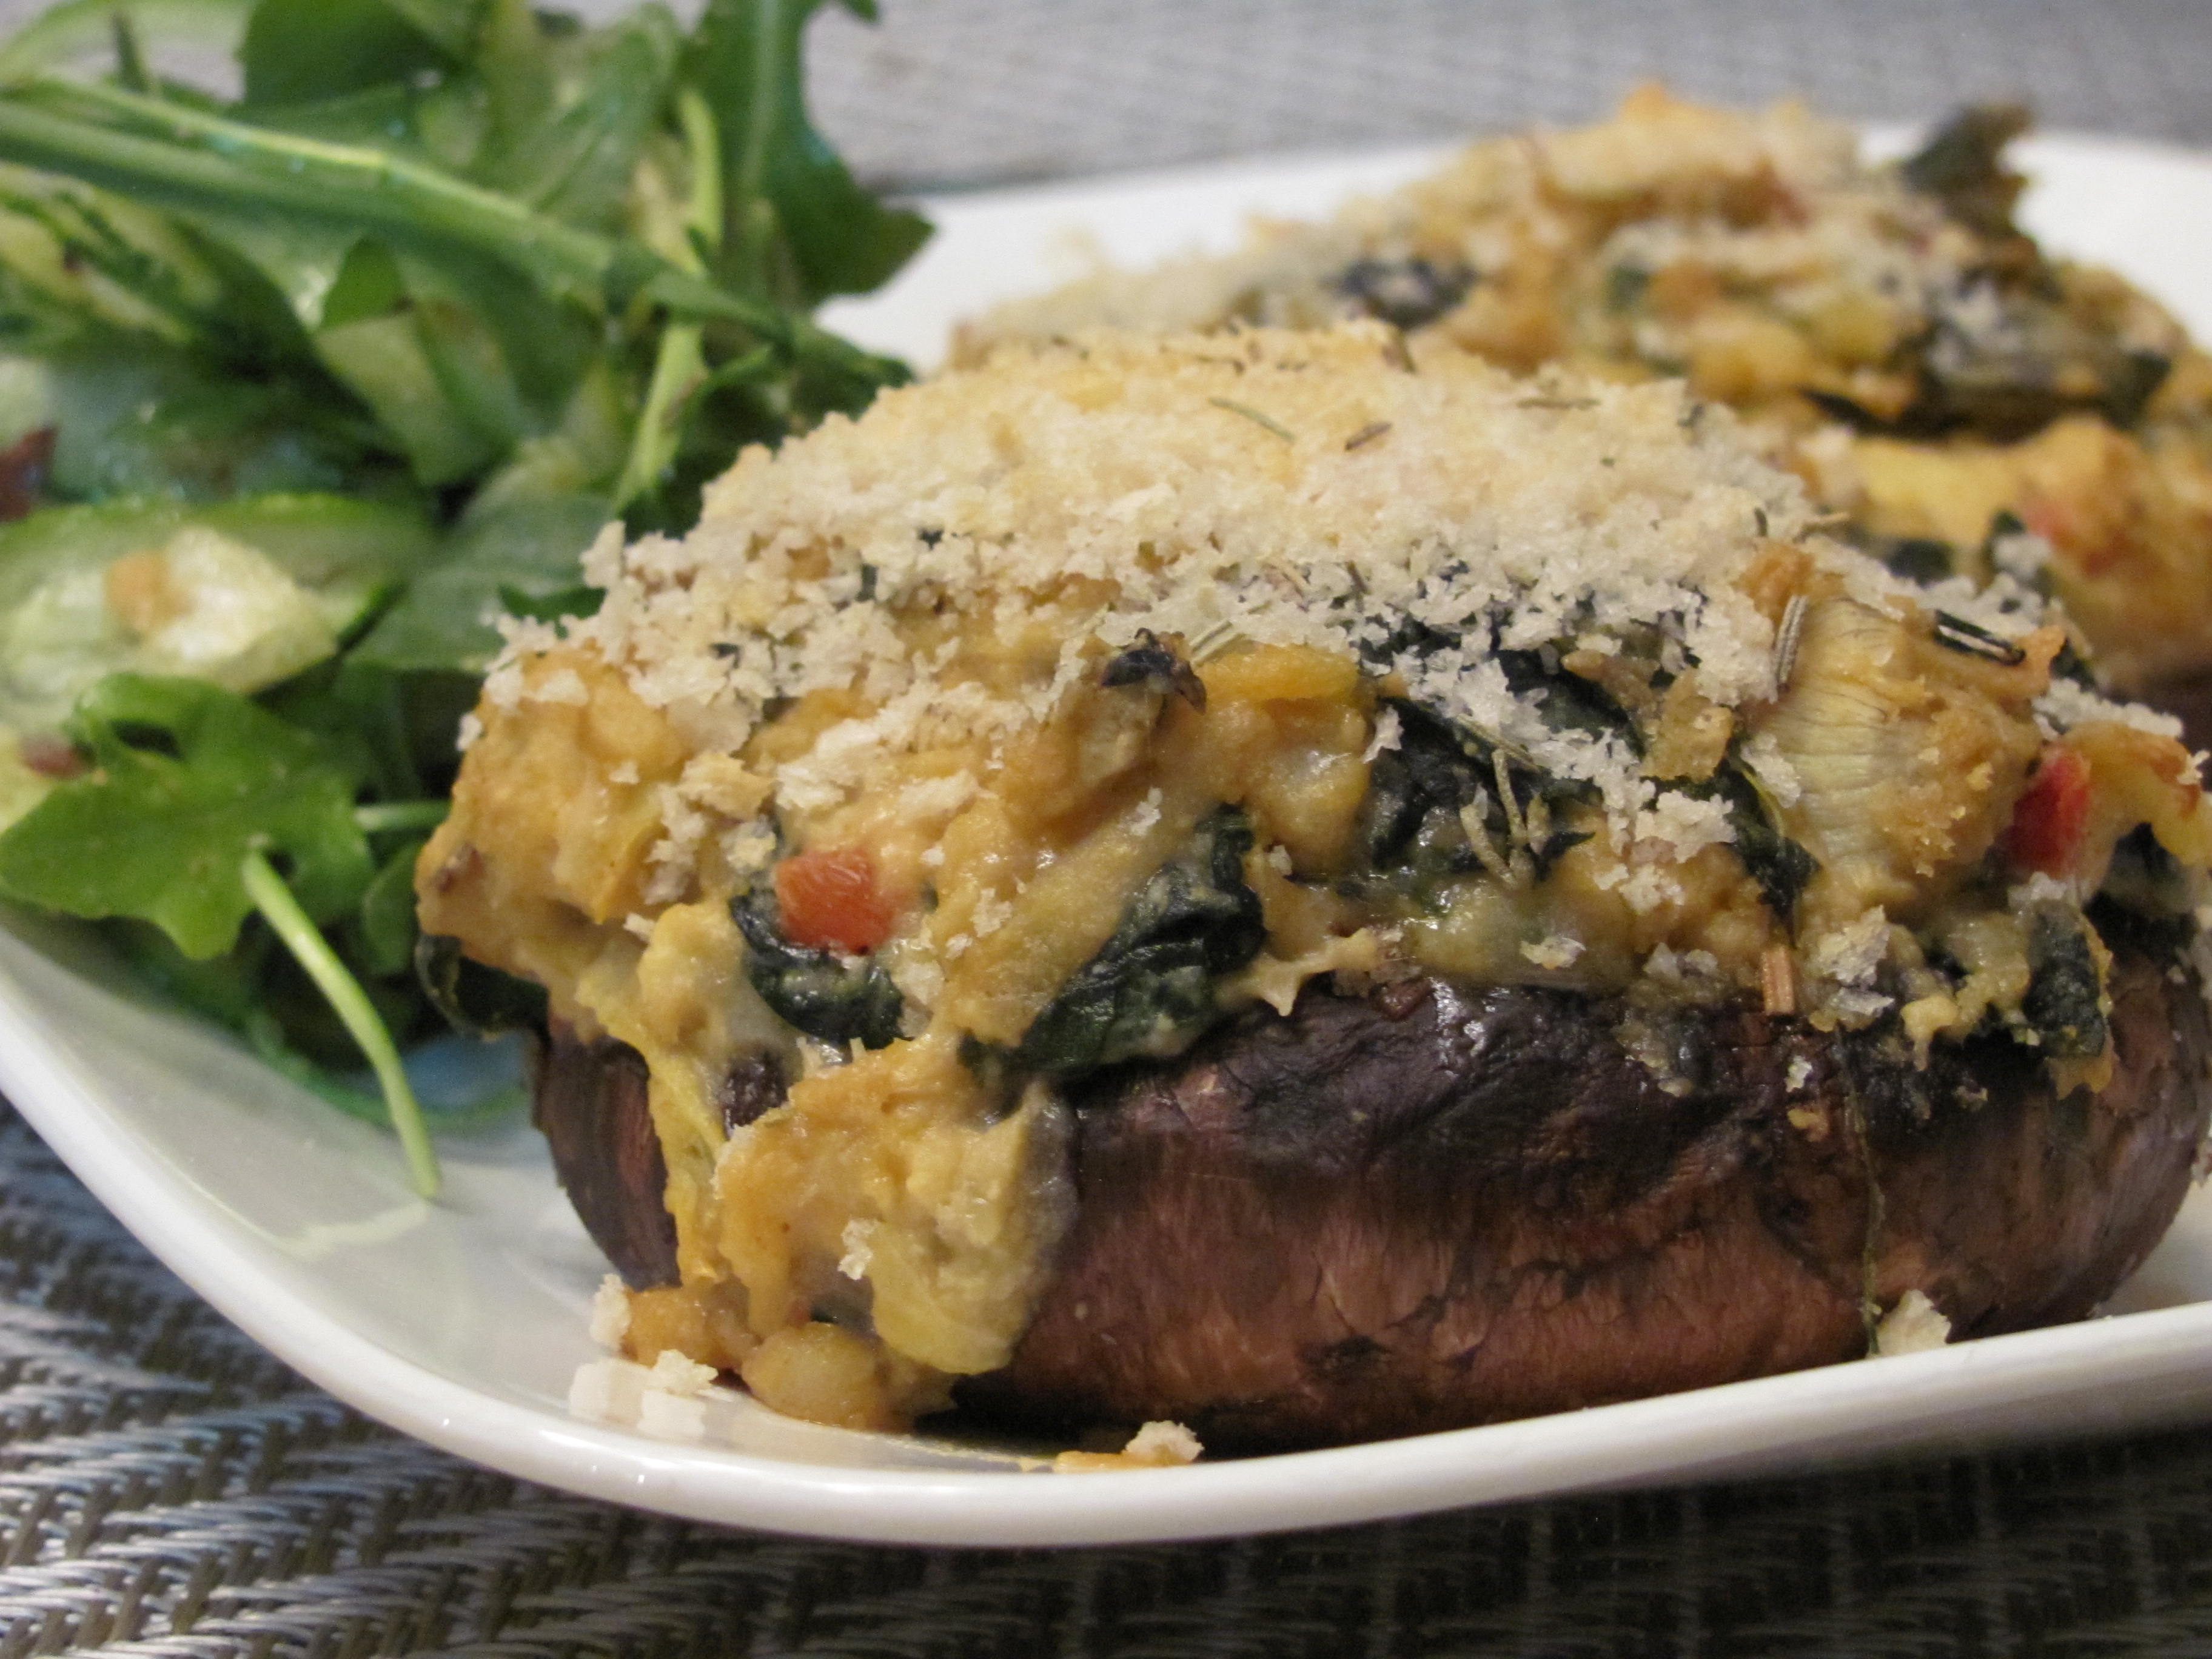 Creamy Spinach and Artichoke Hummus Stuffed Portobello Mushrooms ...